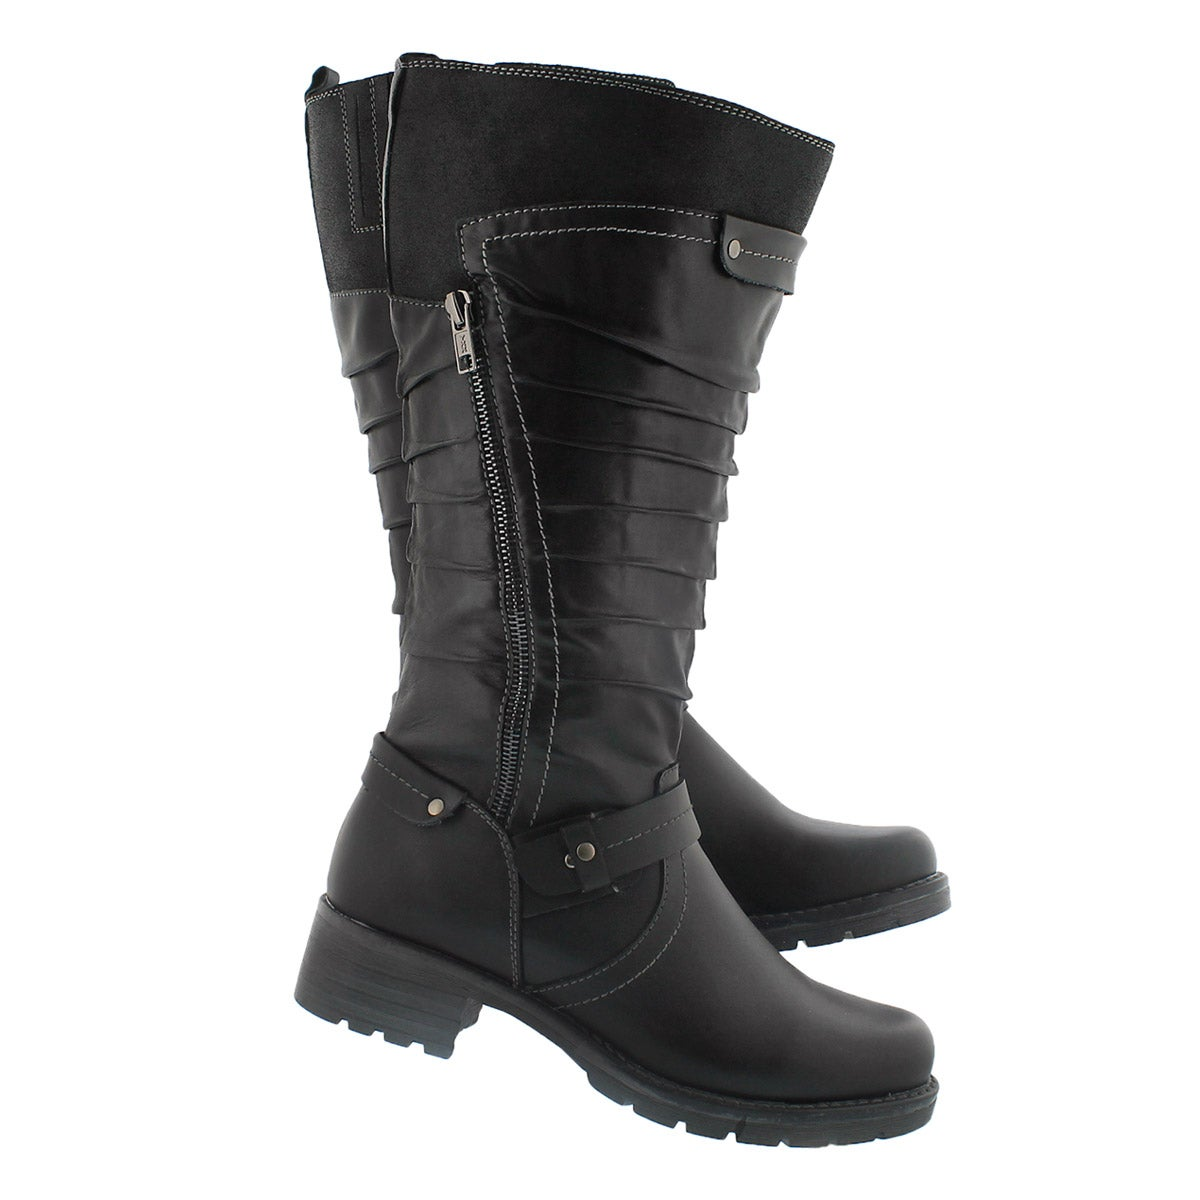 Lds Dominique blck tall riding boot-wide